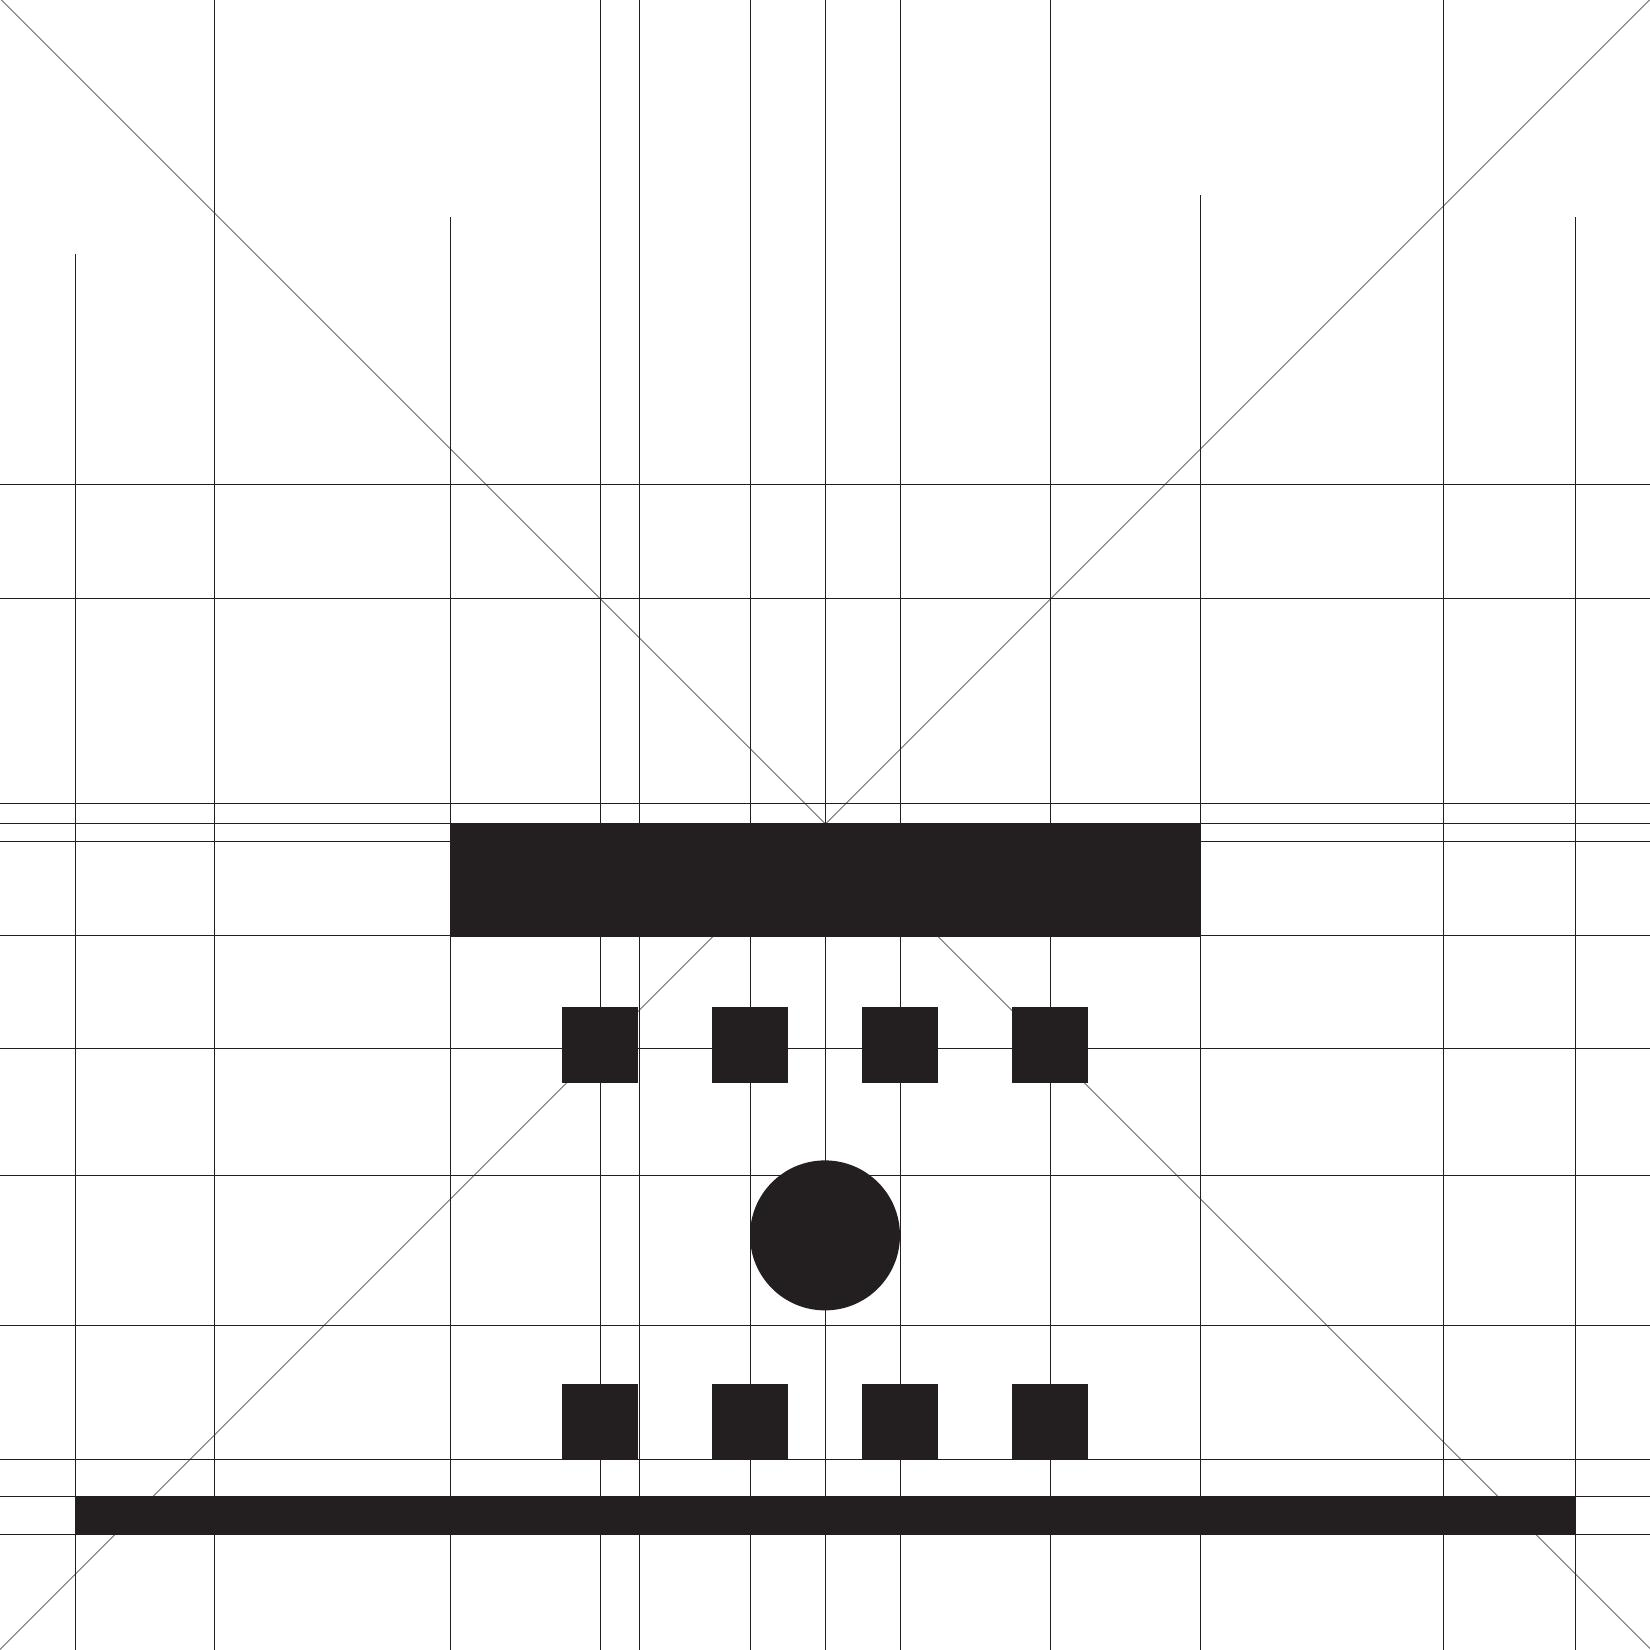 Assignment5_process2_#4_shapes.lines_000001.jpg